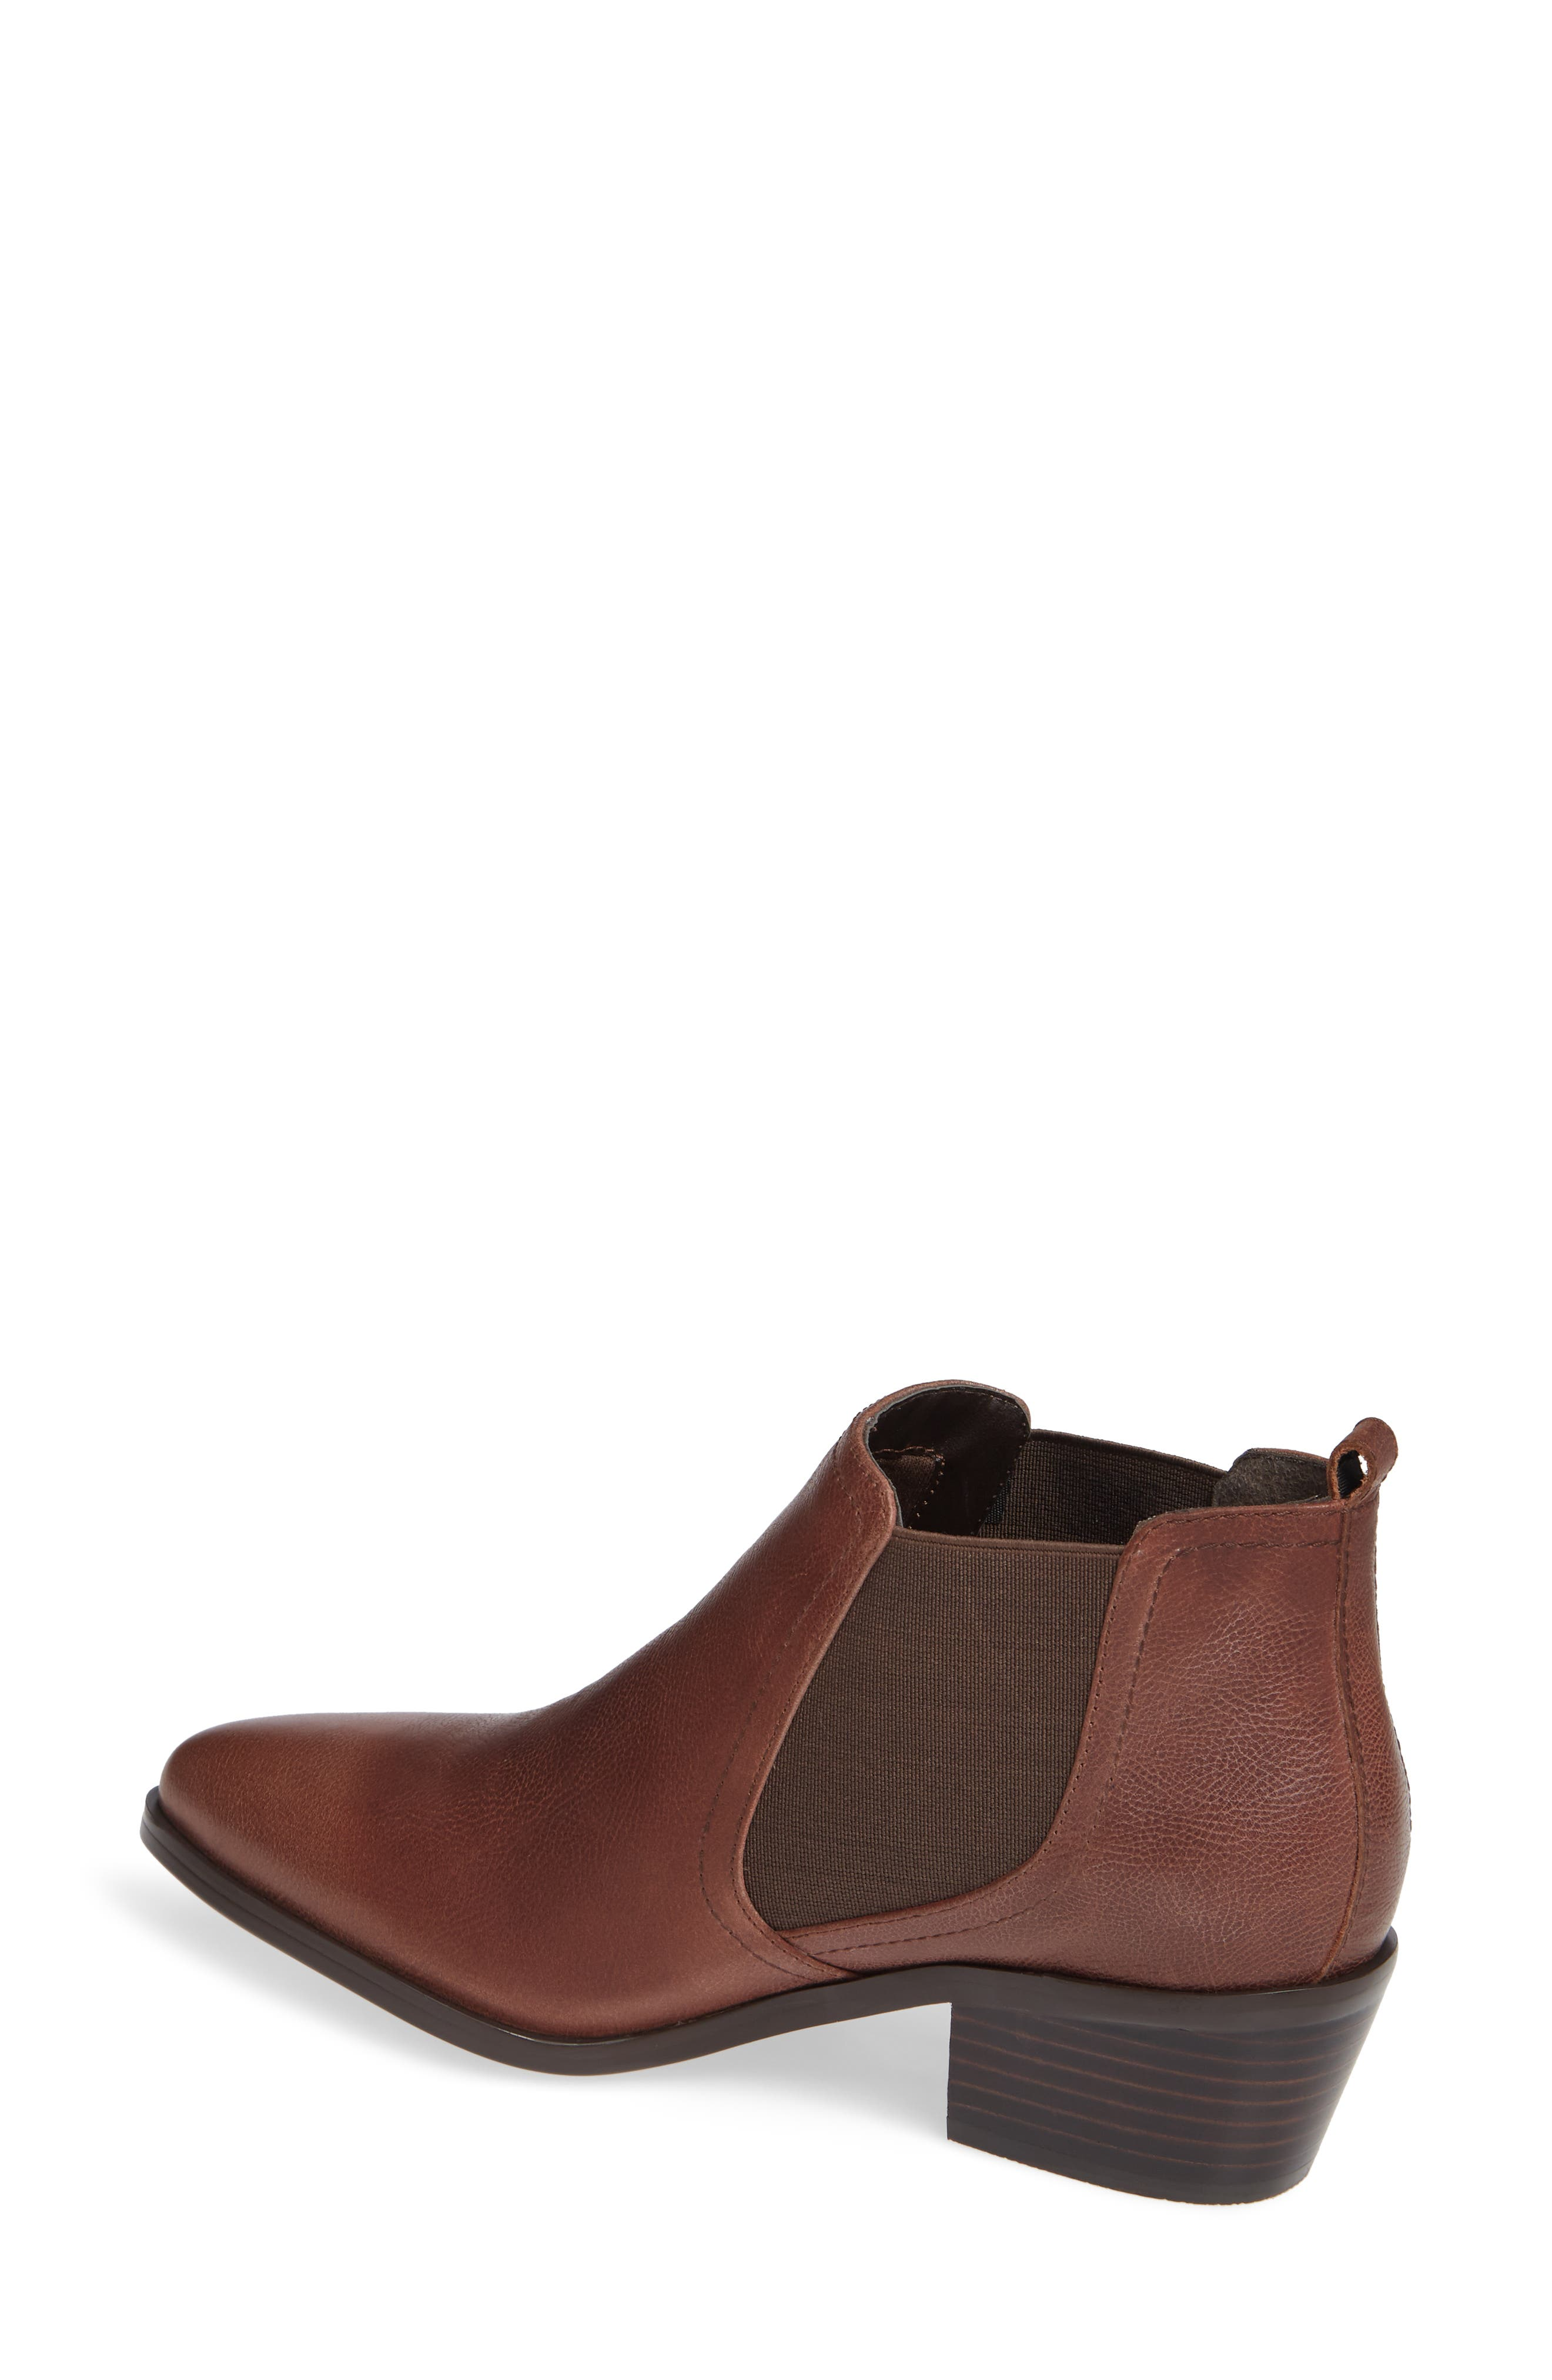 Maxie Chelsea Boot,                             Alternate thumbnail 2, color,                             LUGGAGE LEATHER